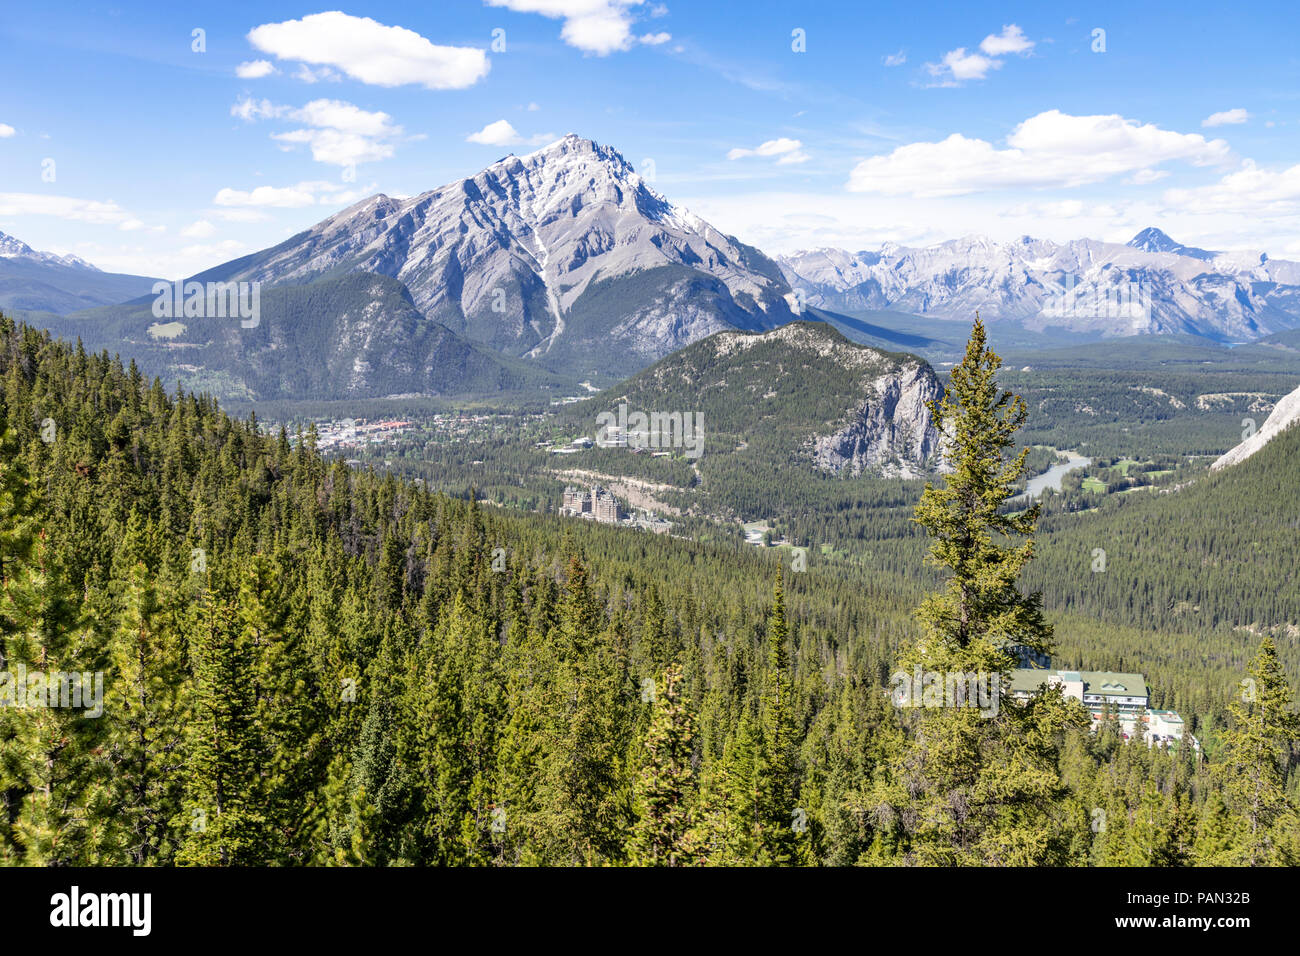 The Rimrock Resort Hotel photographed from the Banff gondola in the Rocky Mountains, Banff, Alberta, Canada Stock Photo